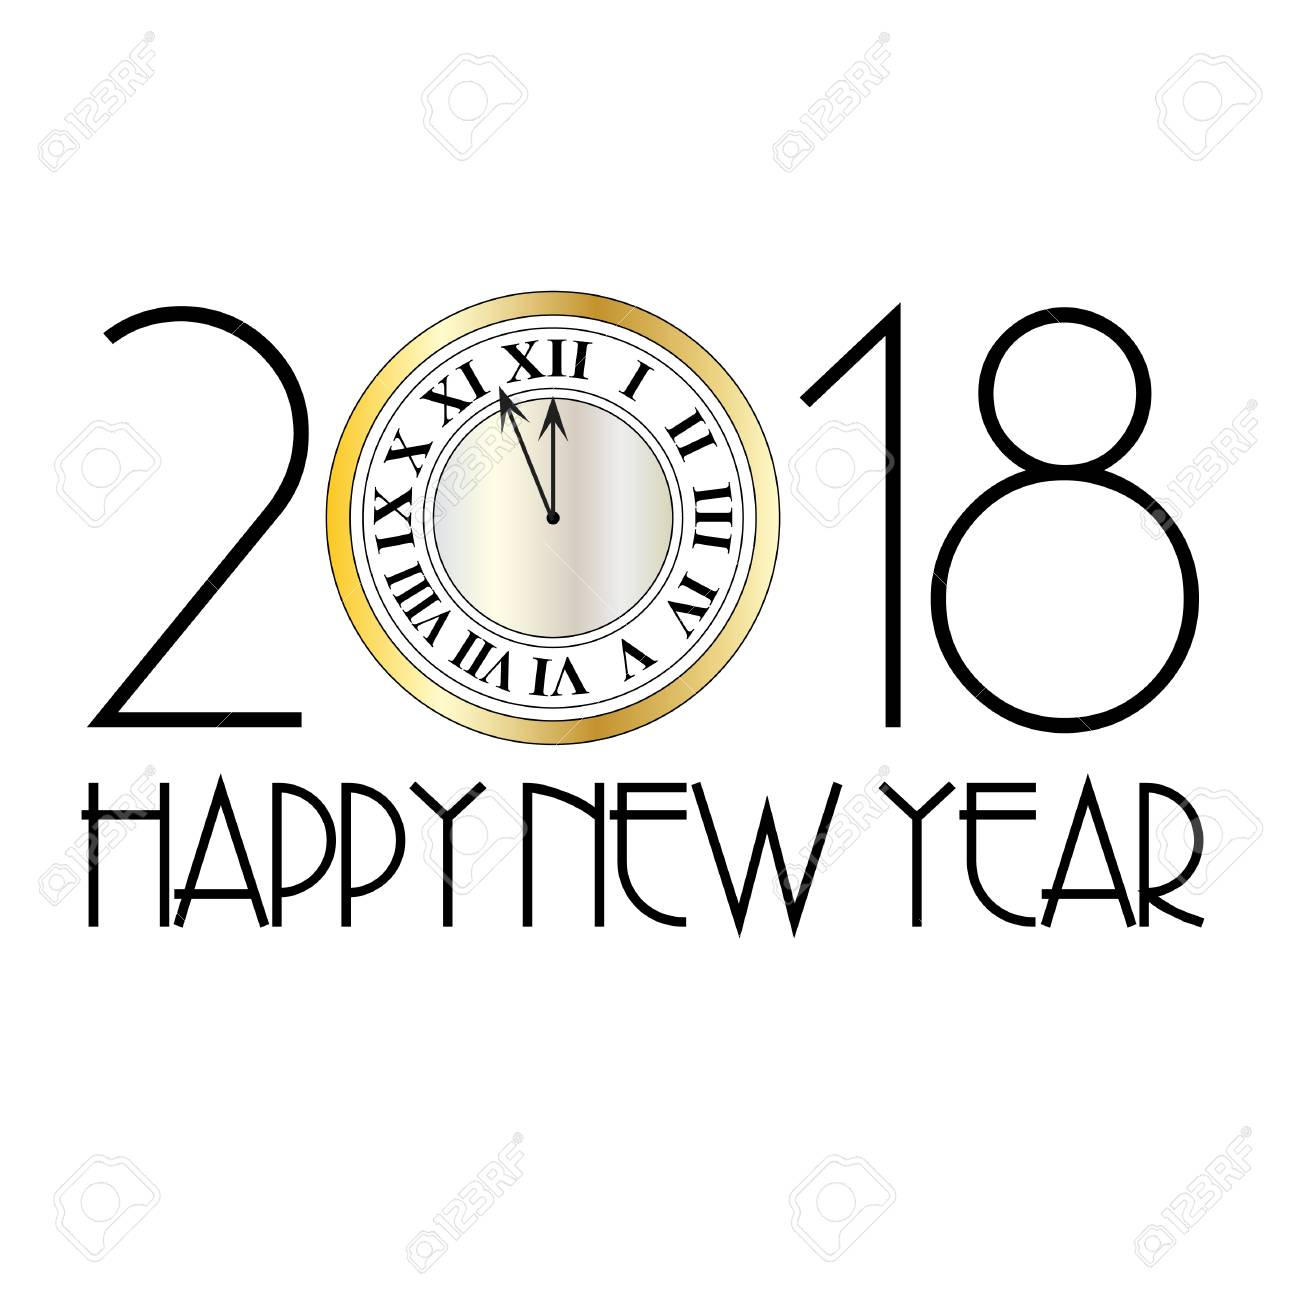 happy new year metallic clock art decoration stock vector 91055083